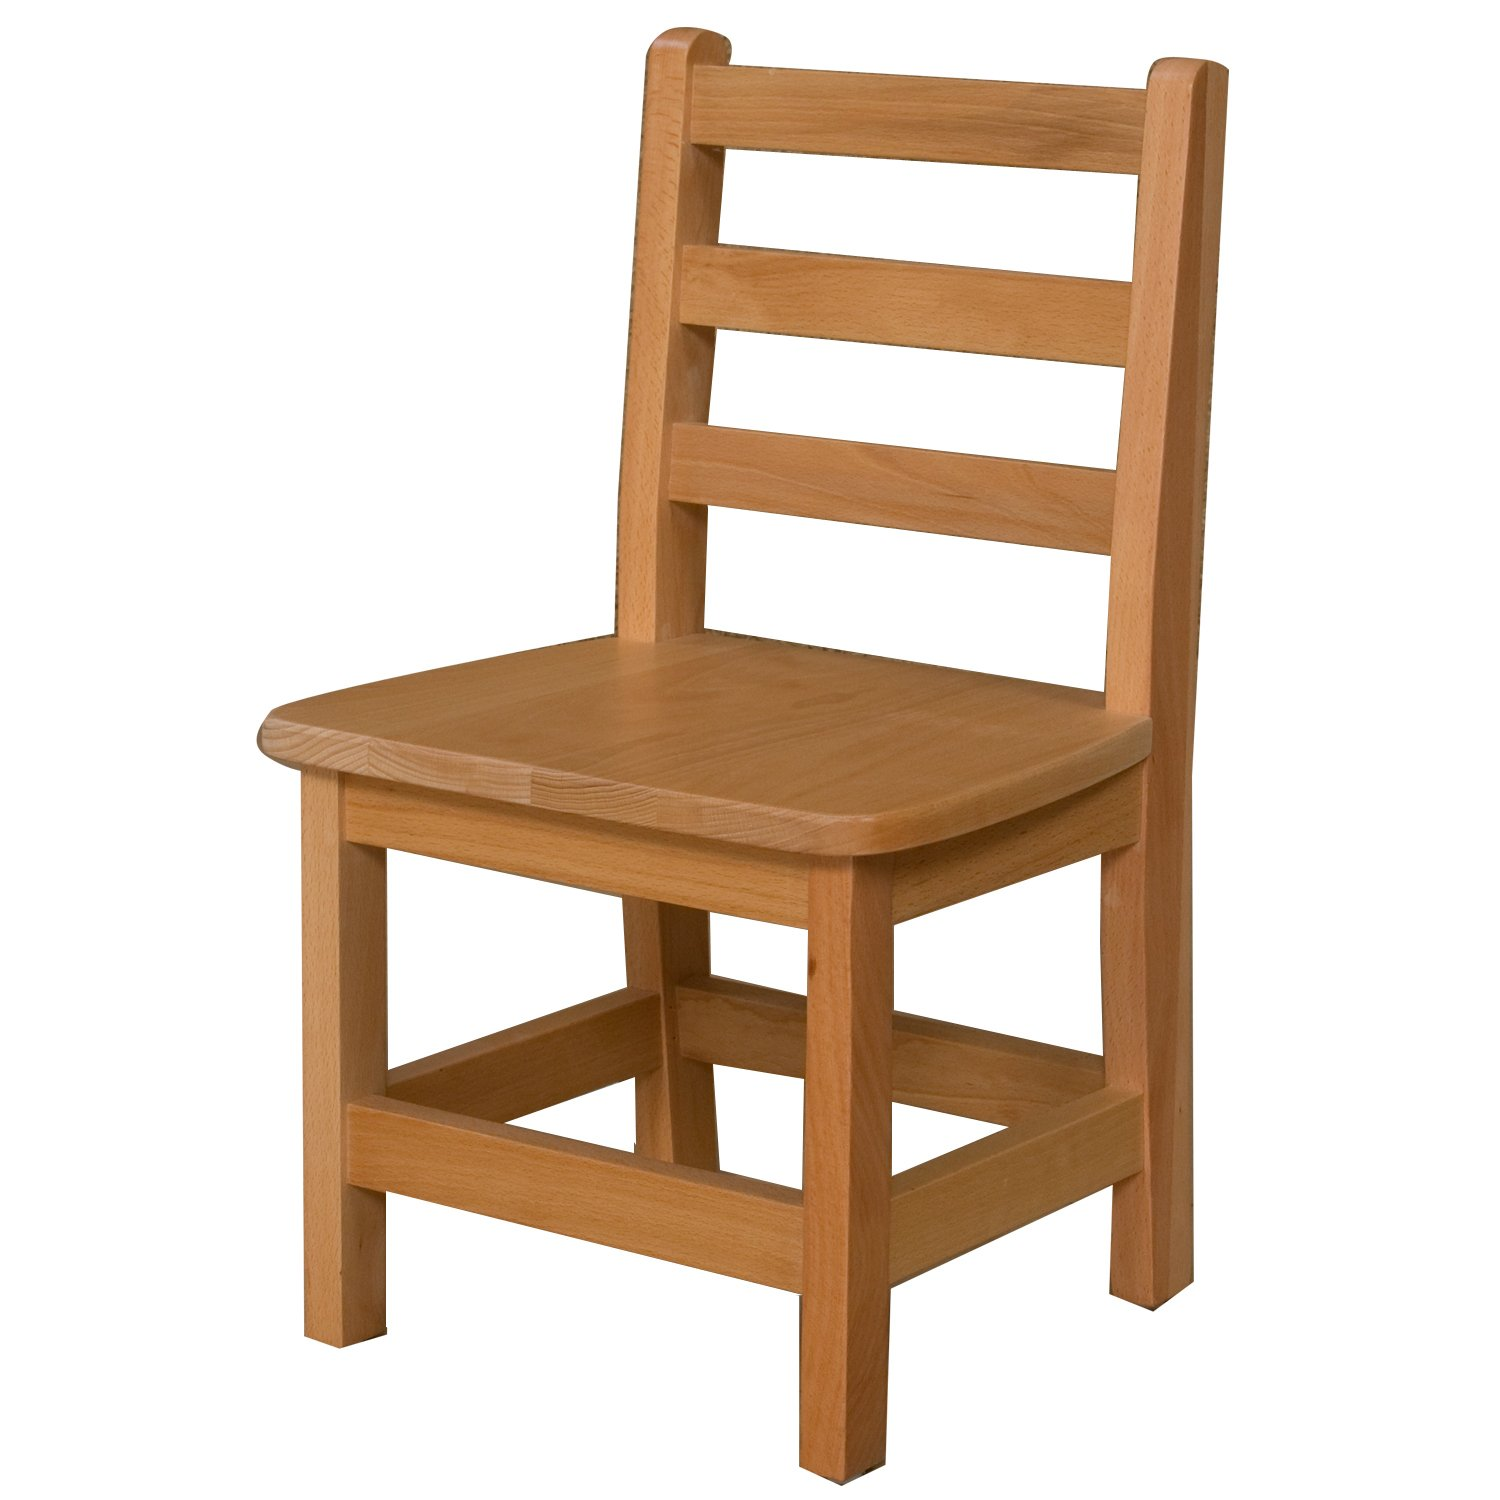 Wood Designs WD81201 Child's Chair, 12'' Height Seat, (1) Per Carton